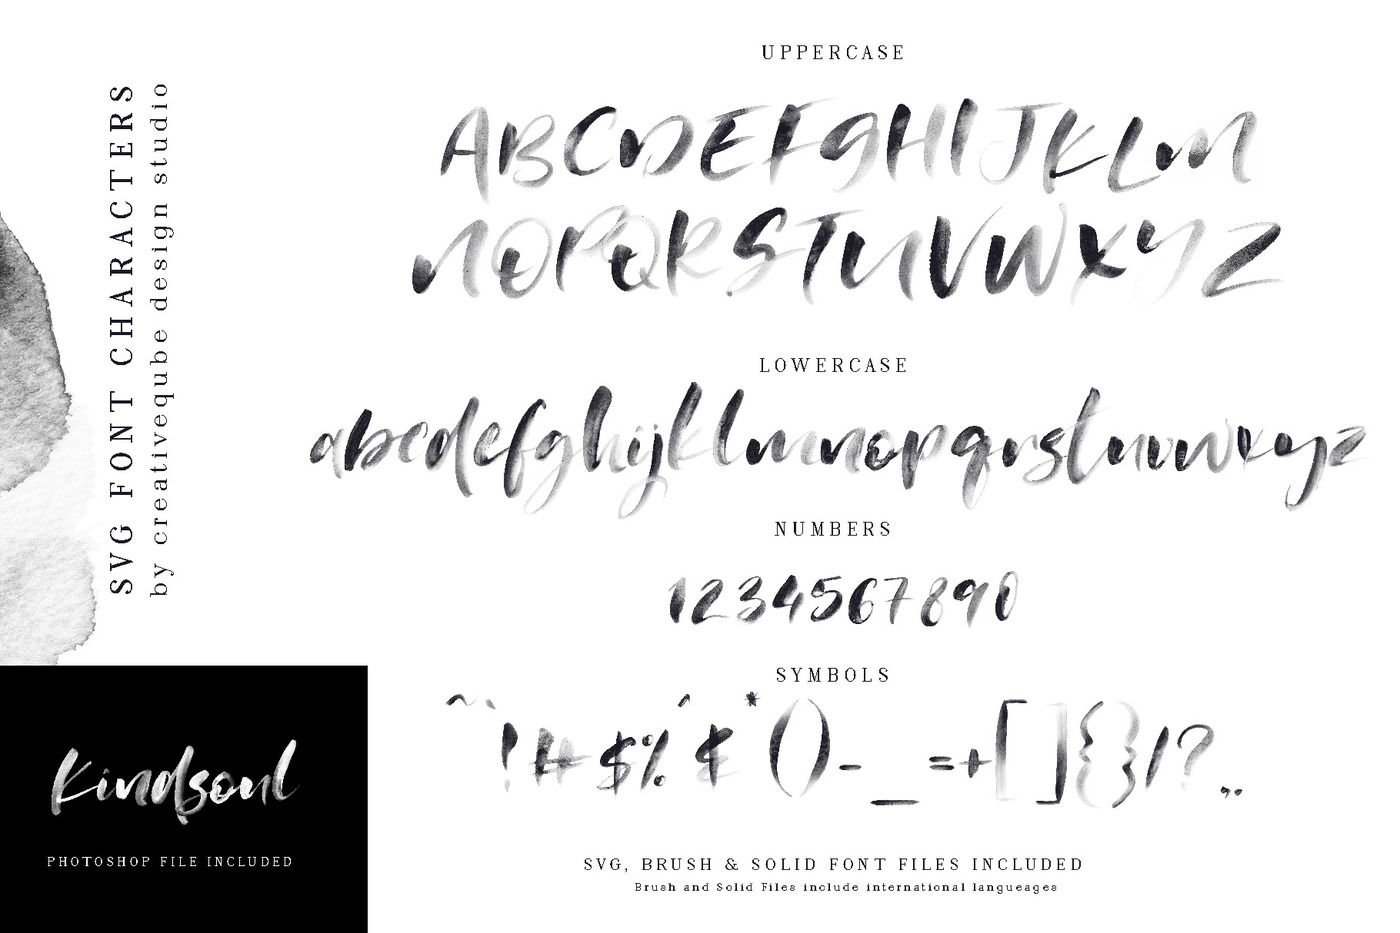 Kindsoul Svg Script Serif Font Duo By Creativeqube Design